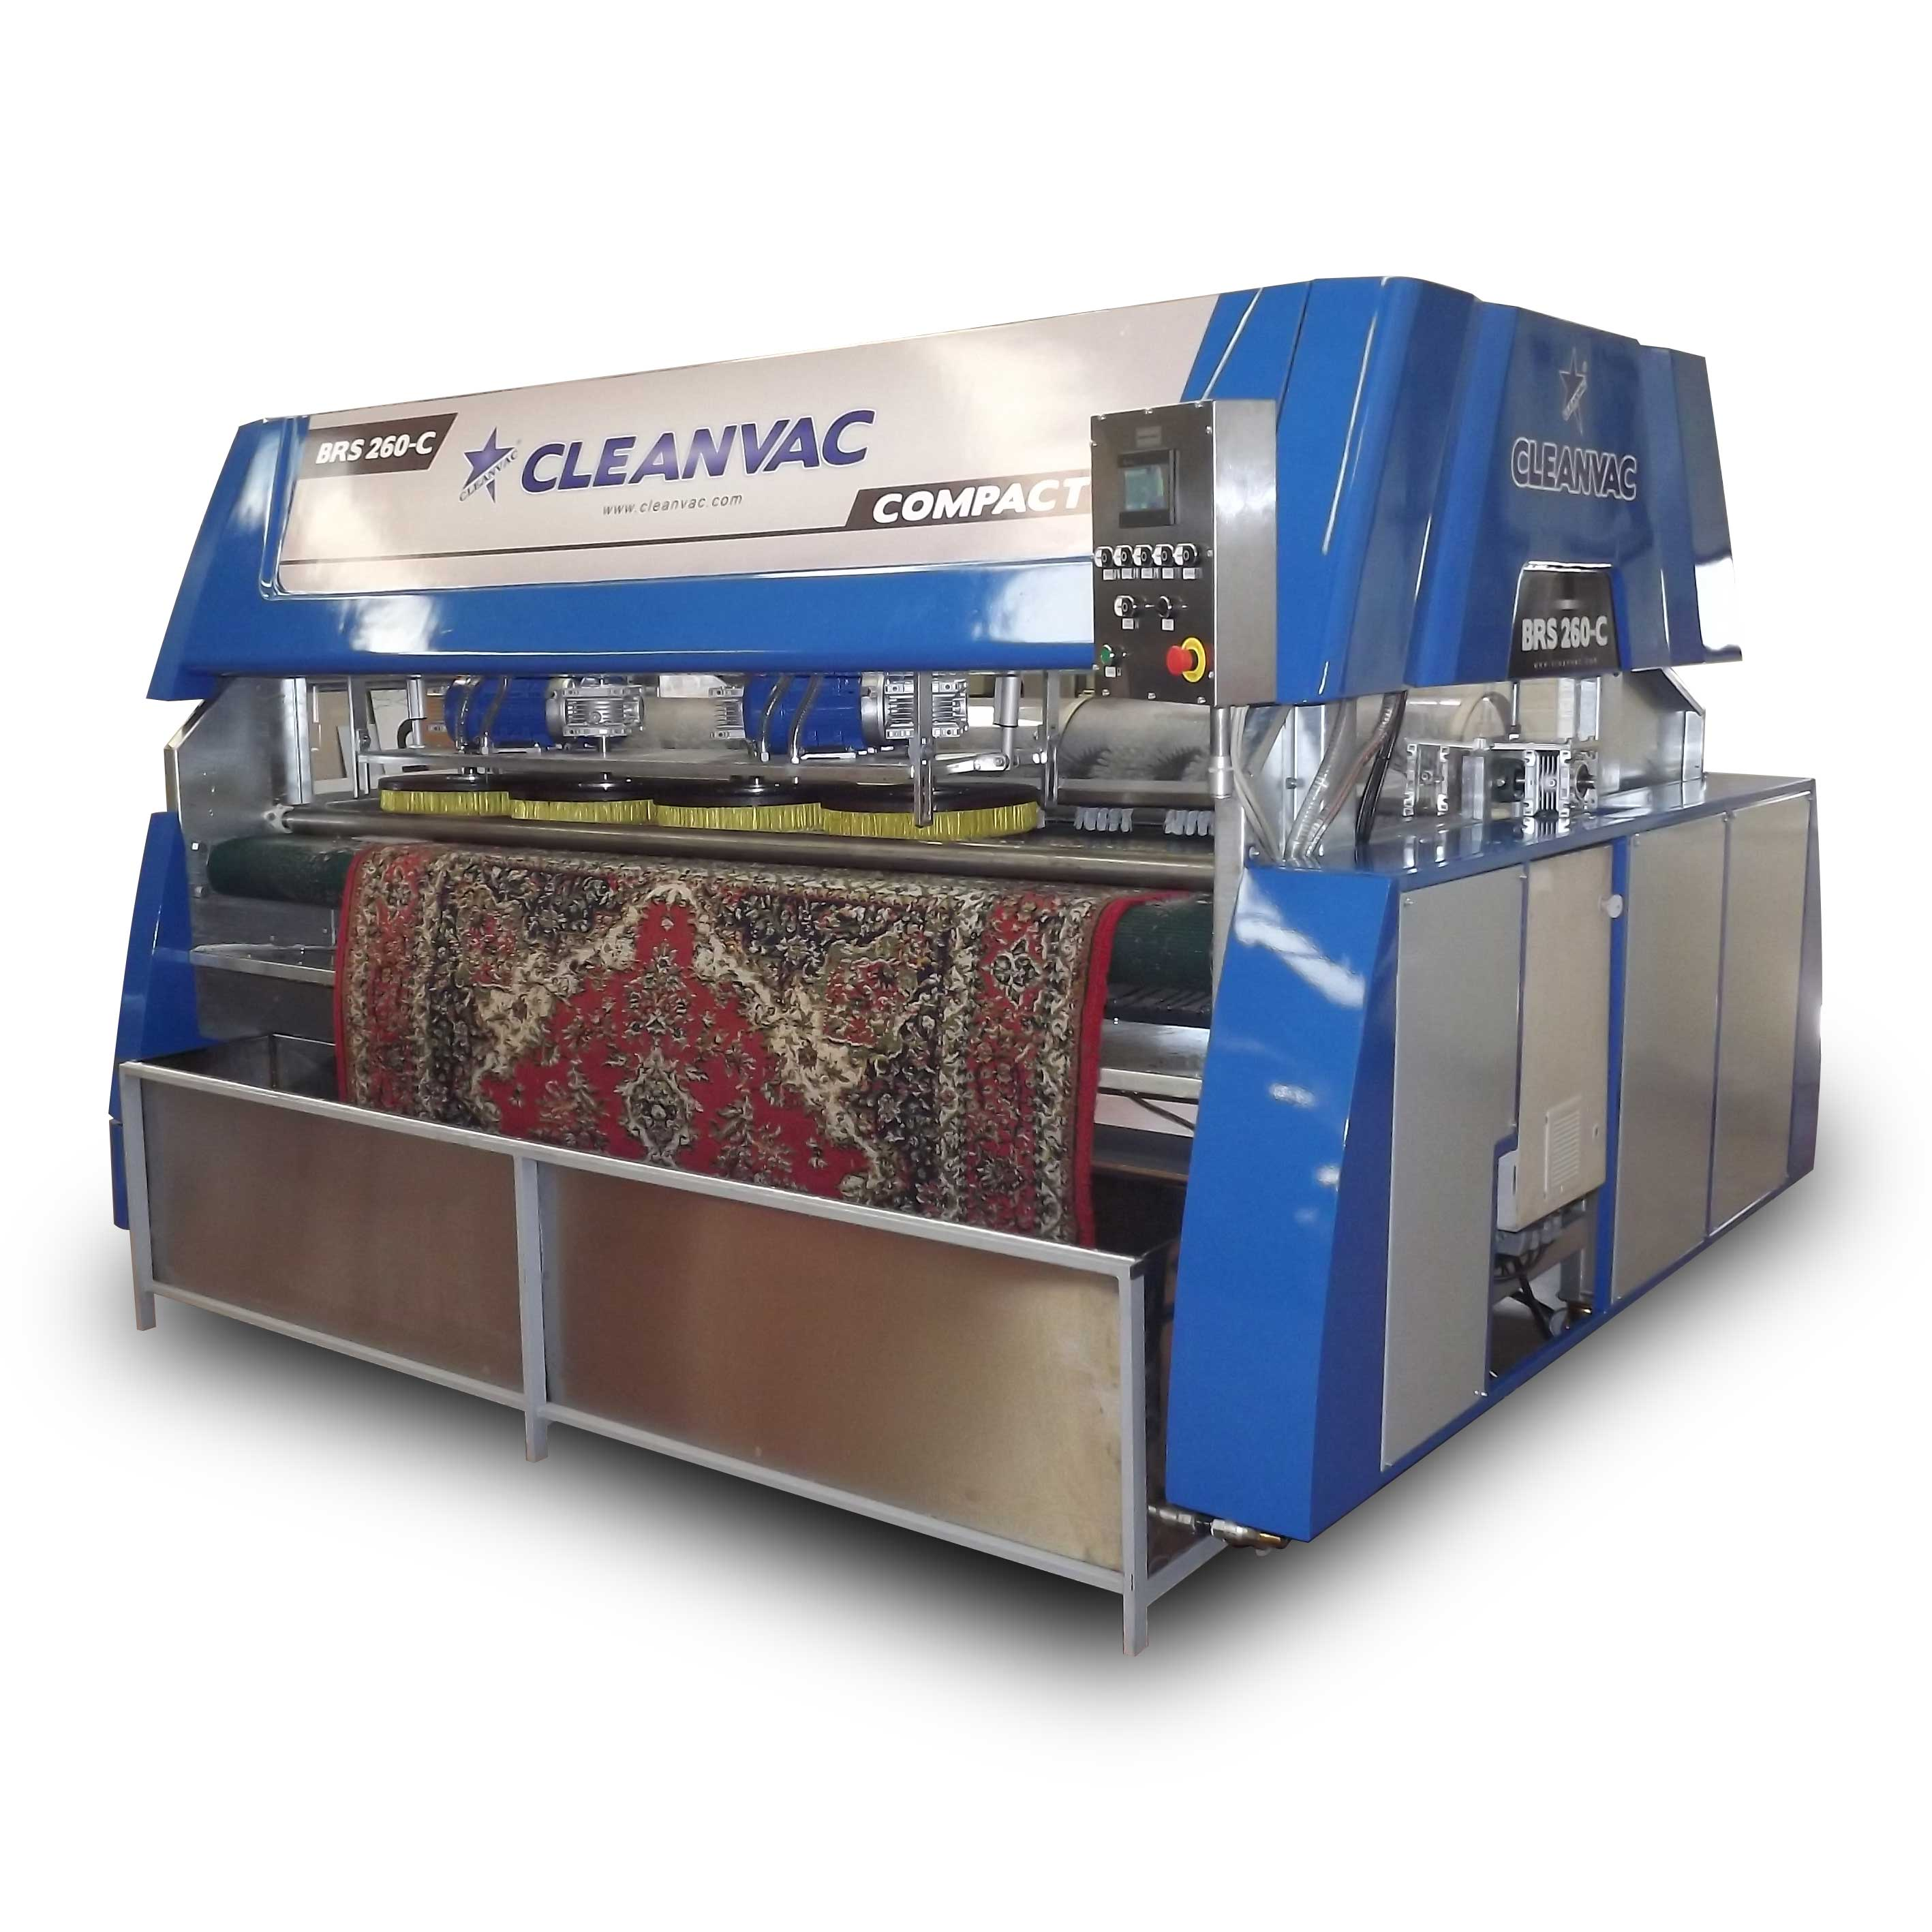 Cleanvac Rug Cleaning Machines Automatic Carpet